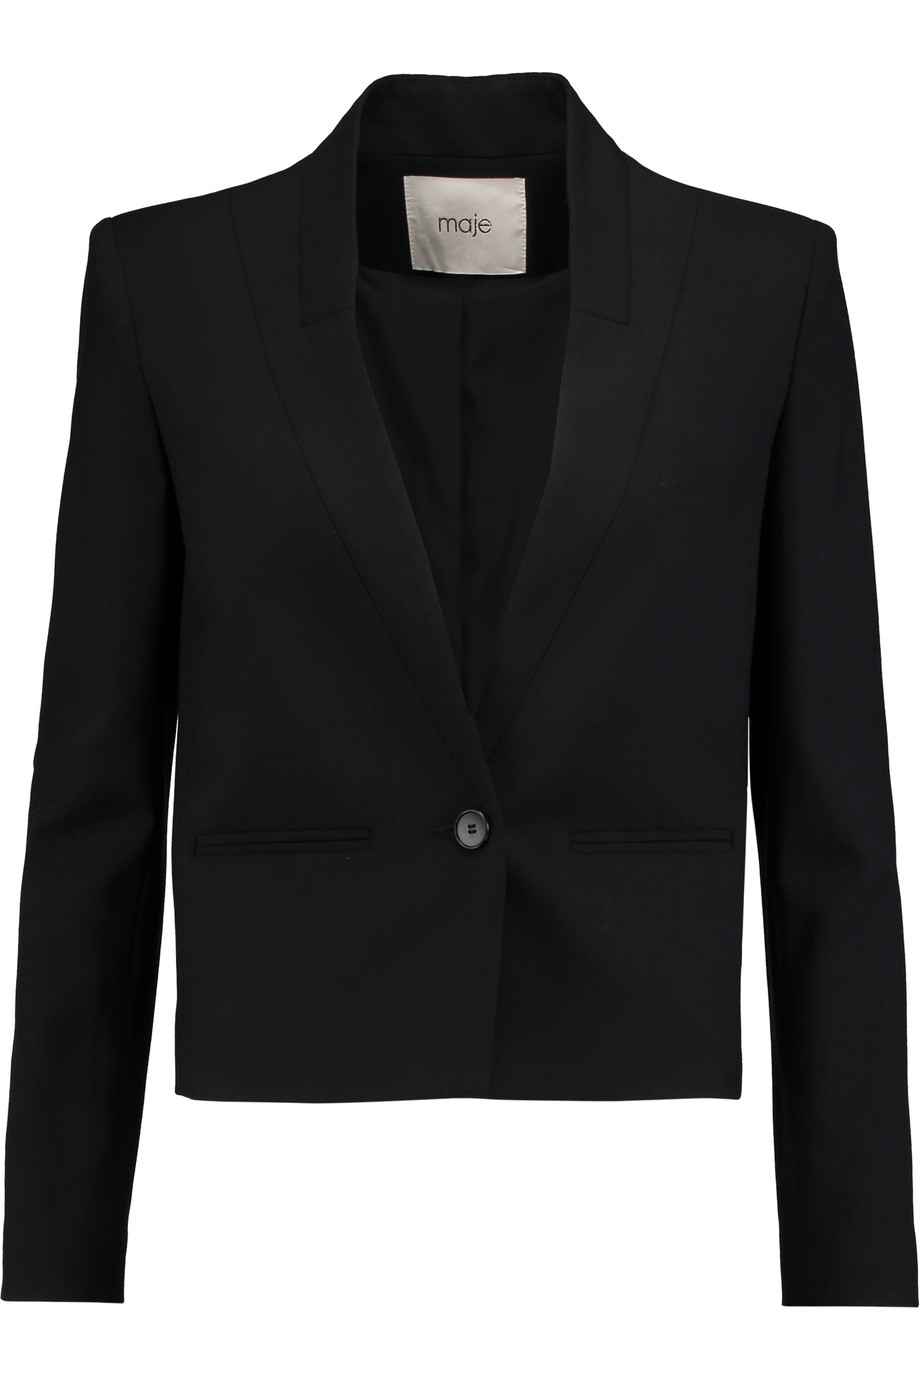 Victoire Crepe Blazer Black - pattern: plain; style: single breasted blazer; collar: standard lapel/rever collar; predominant colour: black; length: standard; fit: tailored/fitted; fibres: polyester/polyamide - mix; sleeve length: long sleeve; sleeve style: standard; texture group: crepes; collar break: medium; pattern type: fabric; occasions: creative work; season: s/s 2016; wardrobe: investment